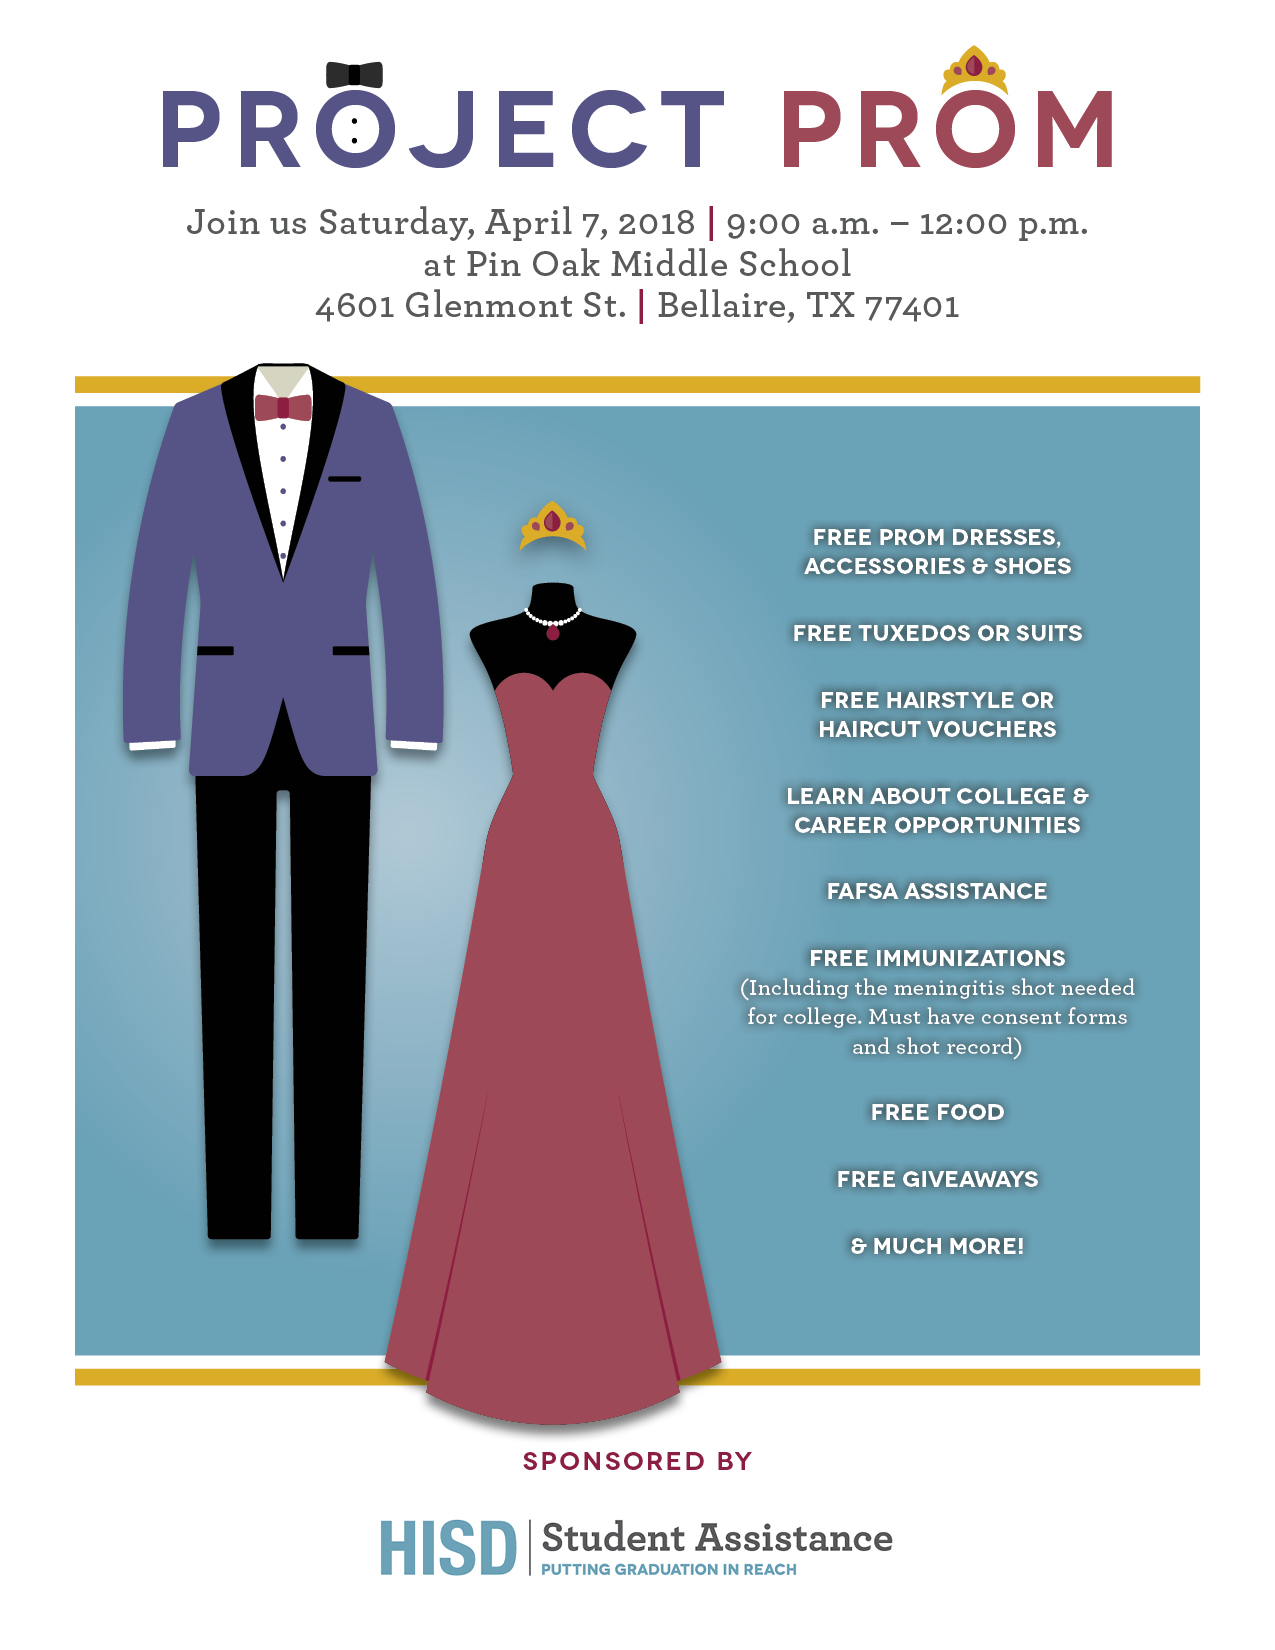 Project Prom this weekend to help students in need receive free ...